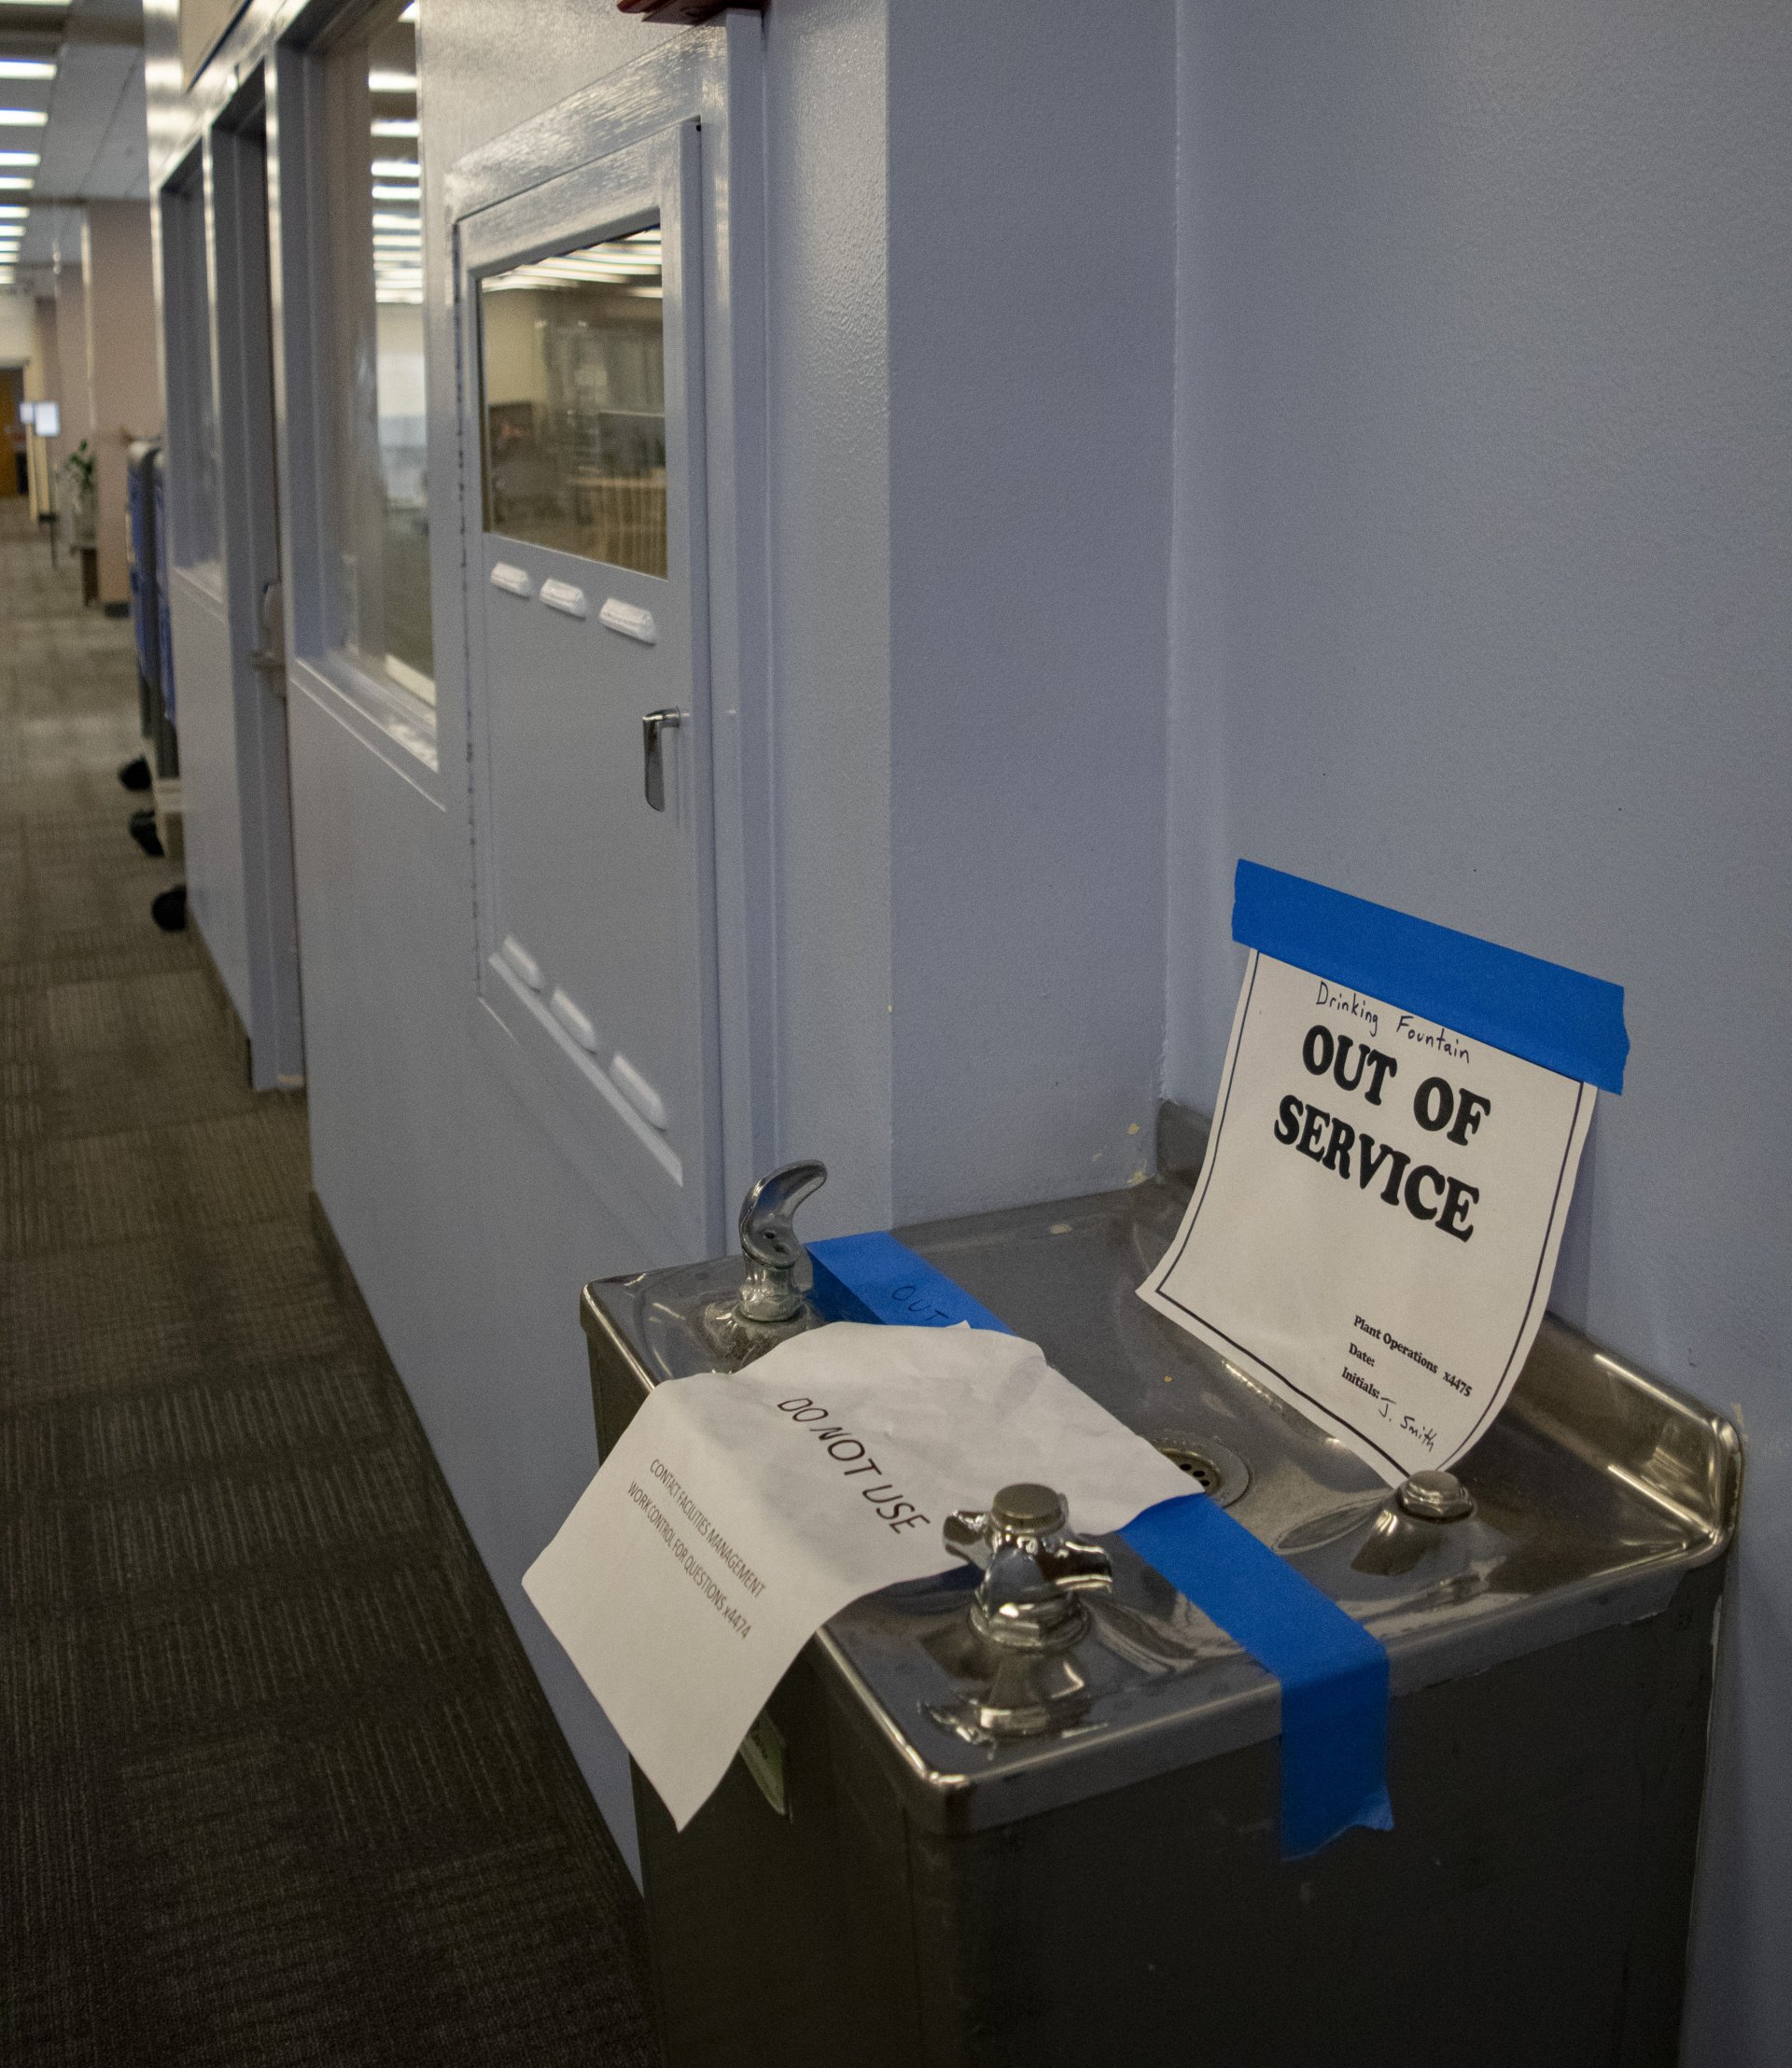 A water fountain on the third floor of Humboldt State University's library is out of service, on Oct. 15. Results from HSU's summer water test released on Oct. 10 reported that lead particles in these fountains are higher than the Environmental Protection Agency's recommended limit. | Photo by Michael Weber